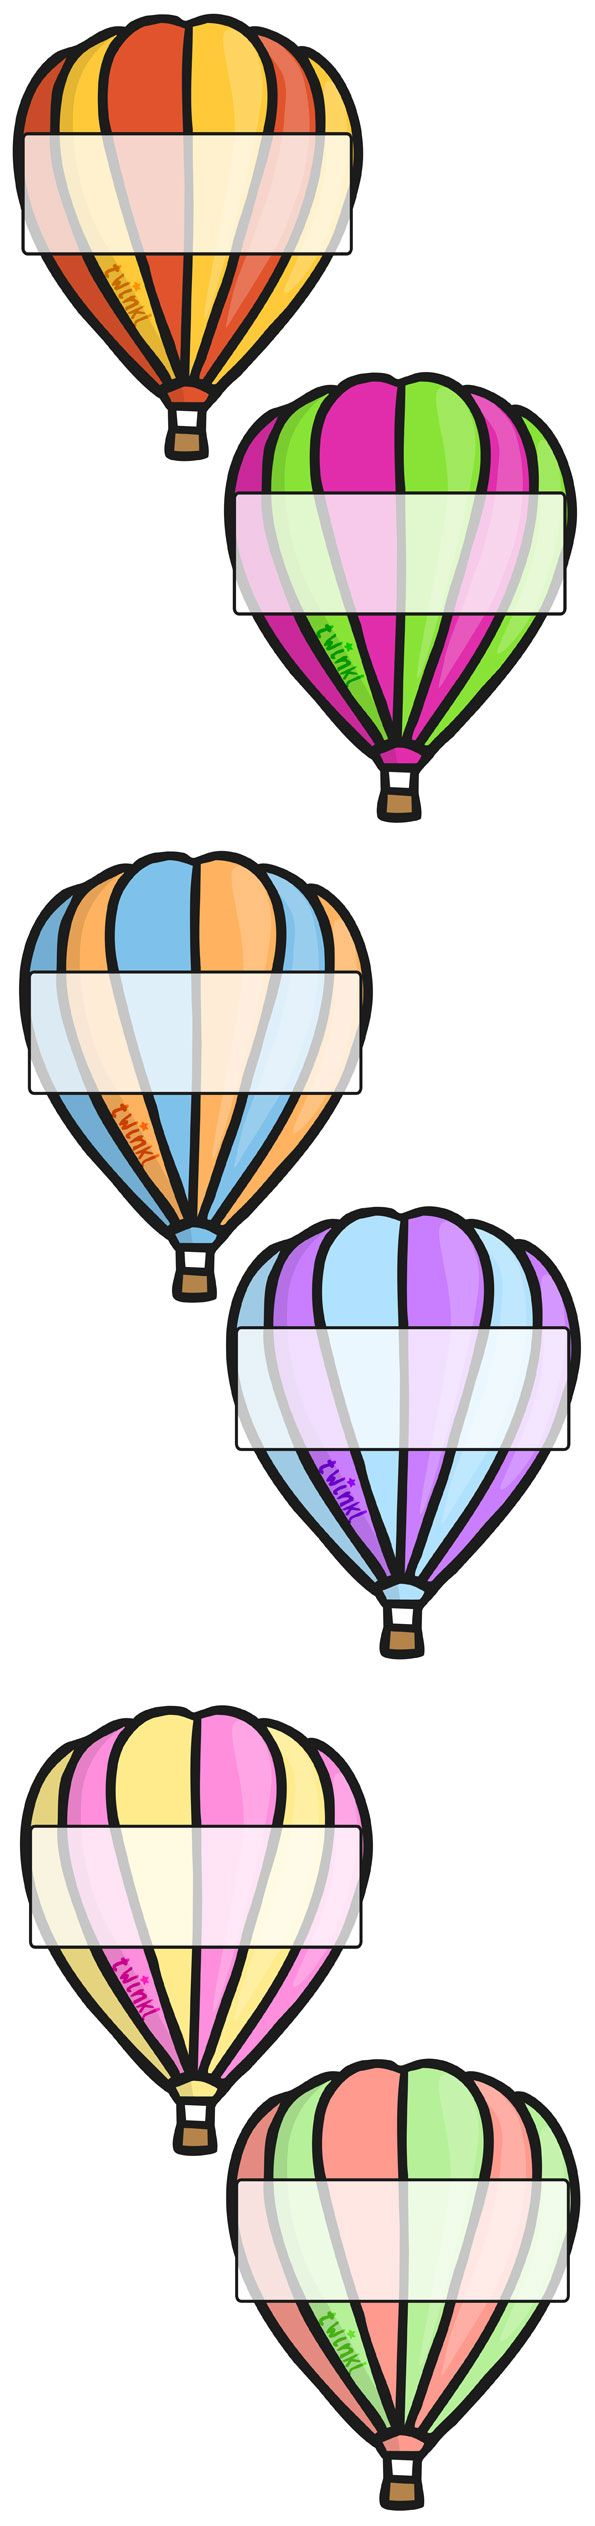 Twinkl Resources >> Hot Air Balloons 2 Per A4 Editable Box  >> Thousands of printable primary teaching resources for EYFS, KS1, KS2 and beyond! hot air balloon, balloon, display, poster, editable, label, template, birthday display,